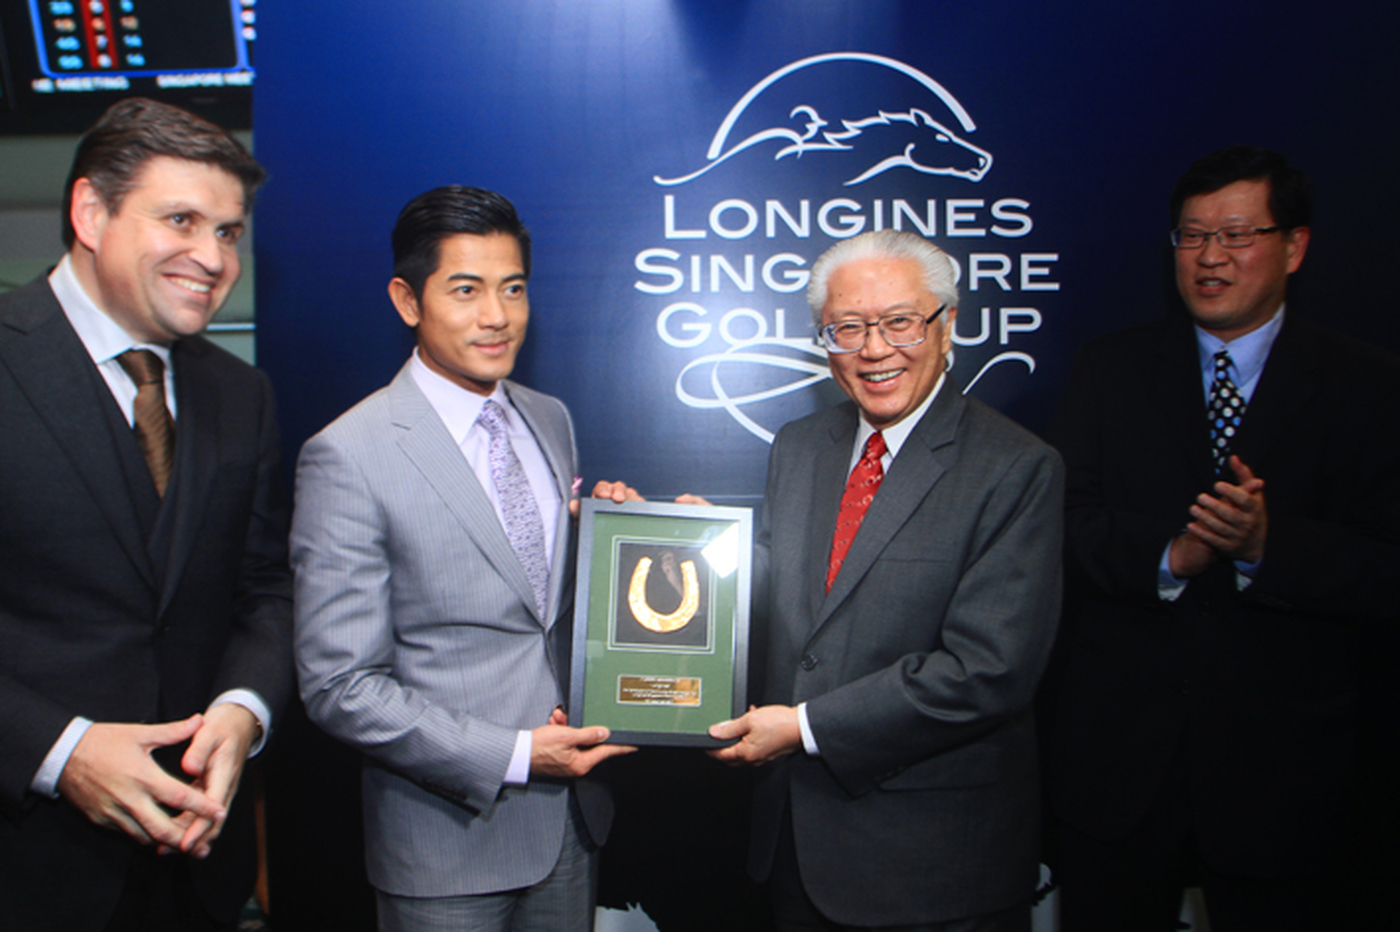 Longines Flat Racing Event: LONGINES SINGAPORE GOLD CUP 2011 raises S$241,136 for the Chaoyang School 12